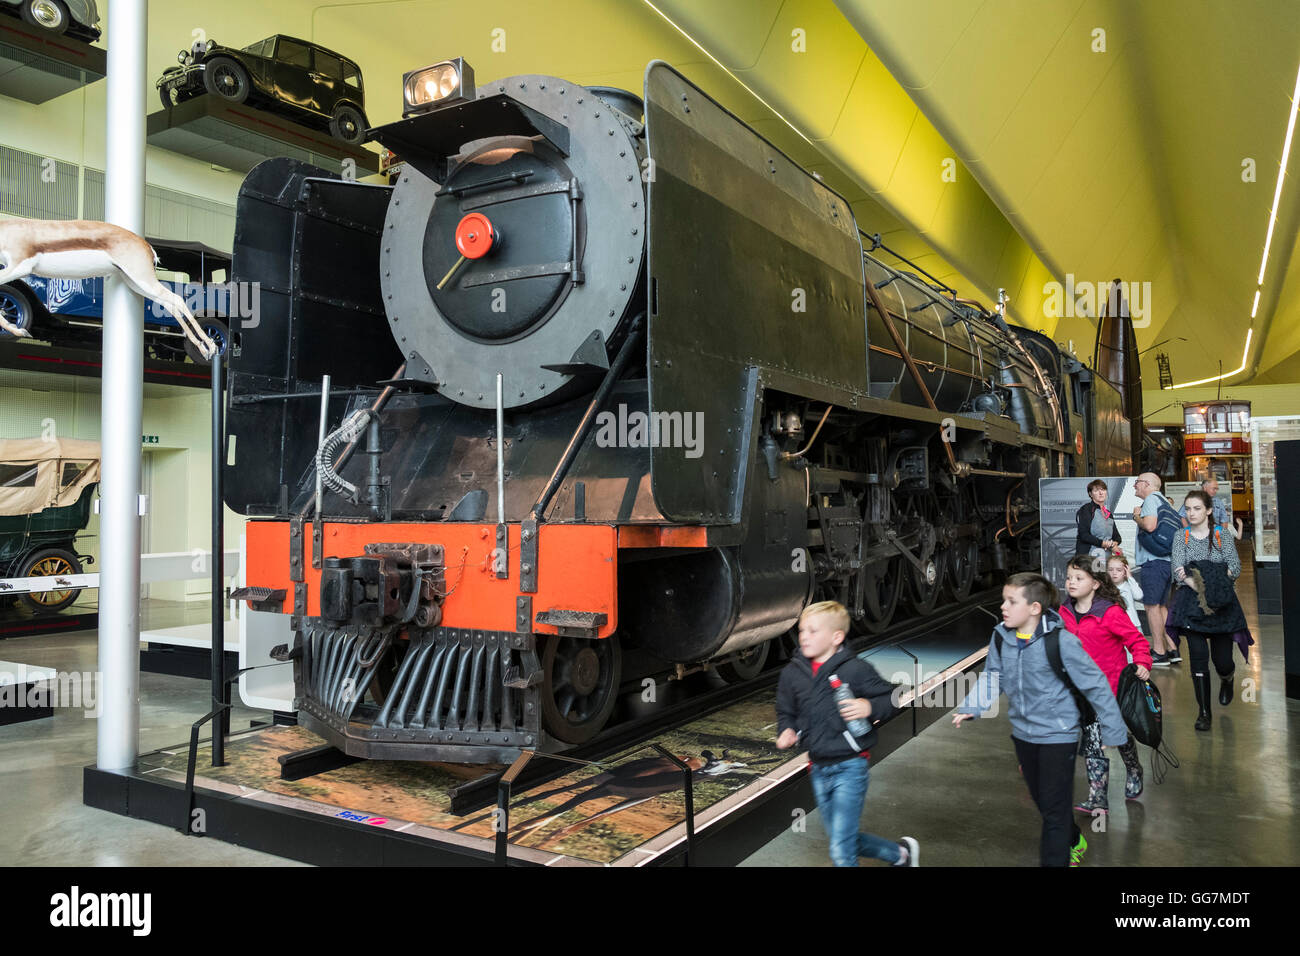 Large steam locomotive on display at the Riverside museum of transport in Glasgow, Scotland, united Kingdom - Stock Image